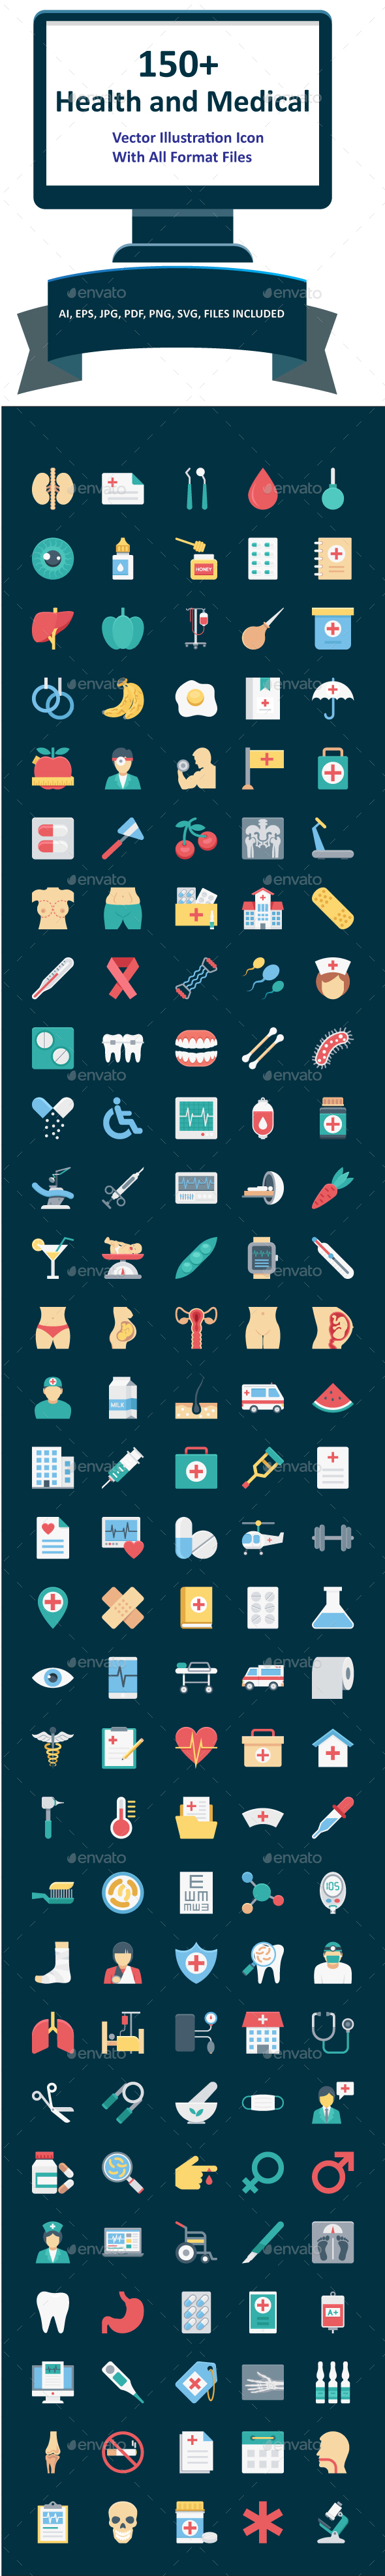 150+ Health and Medical Color Vector Icons Pack - Icons